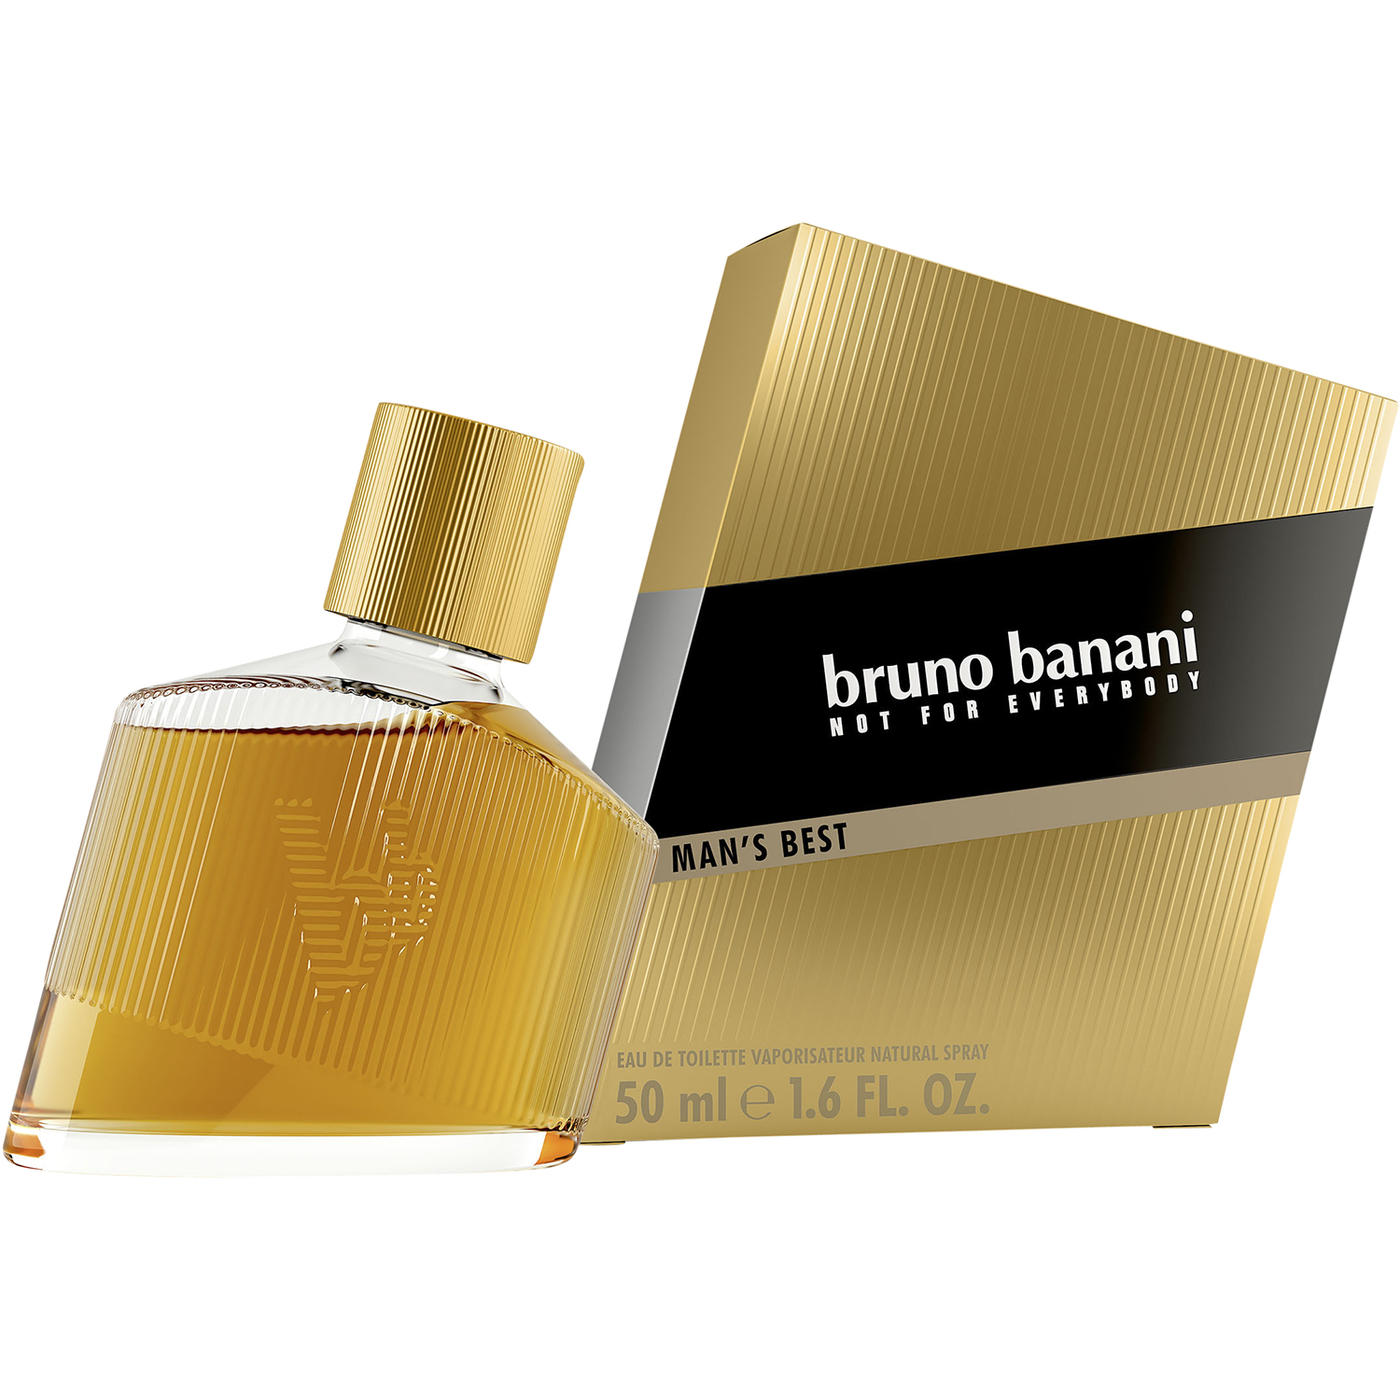 Bruno Banani Man's Best edt